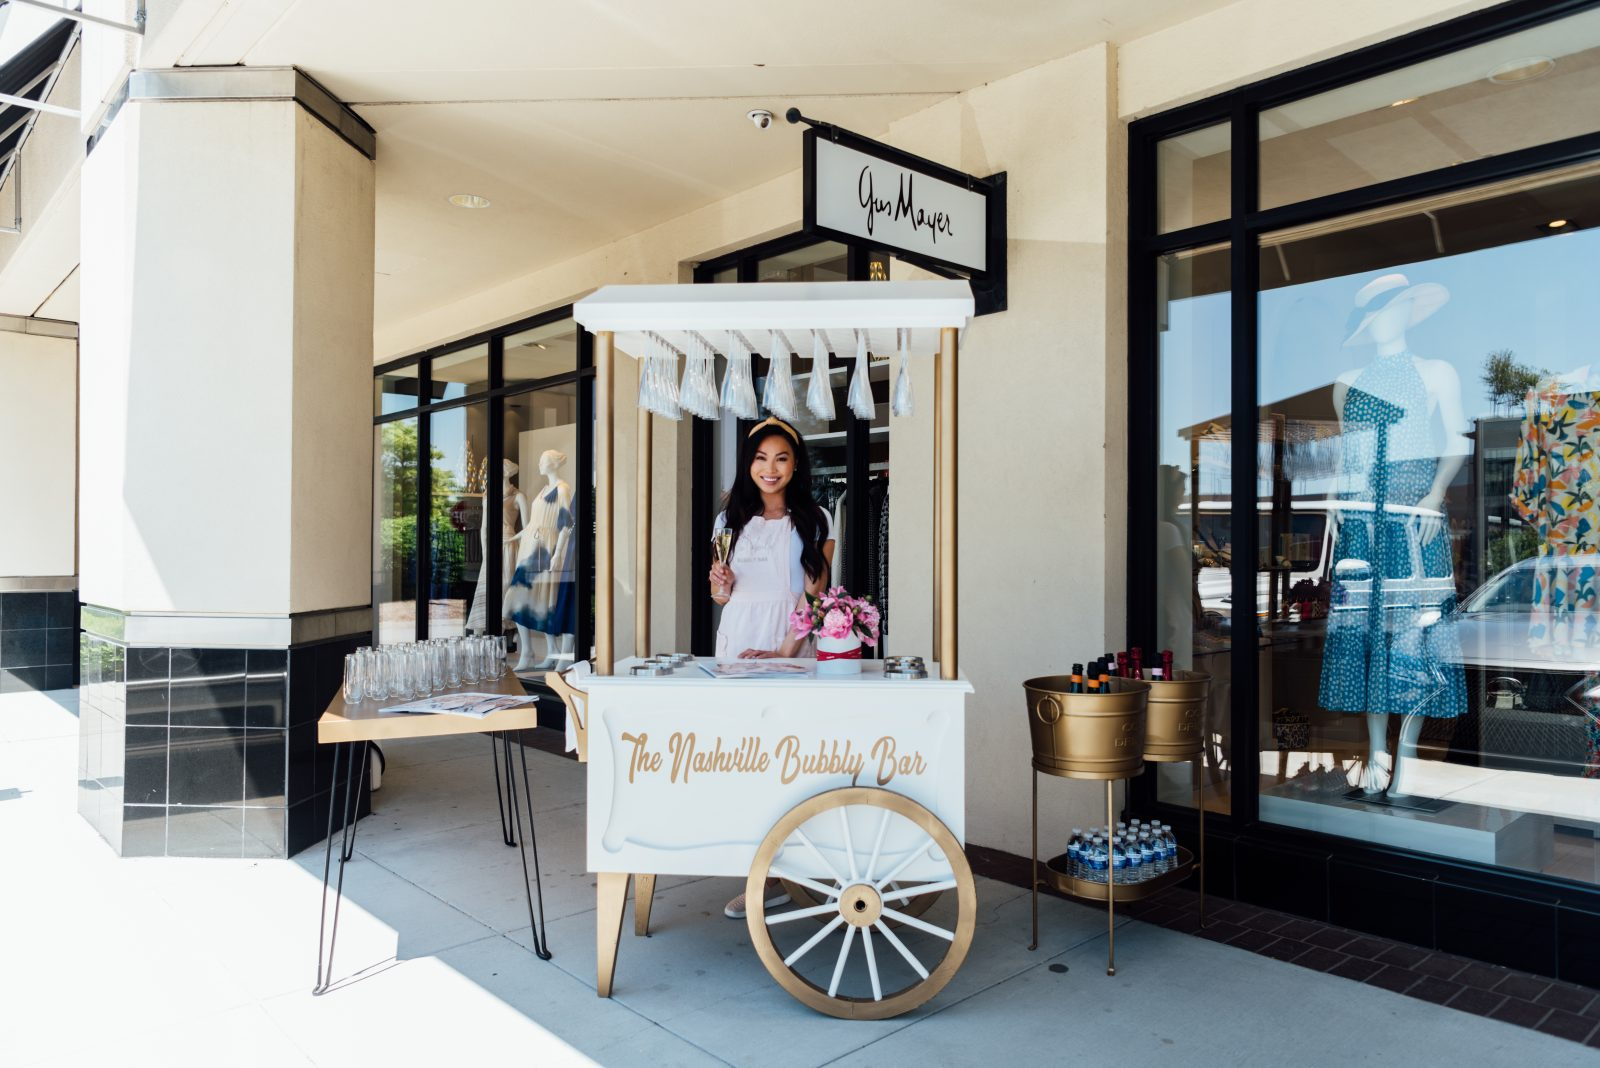 The Nashville Bubbly Bar offering and serving sparkling rose and champagne to guests at Gus Mayer